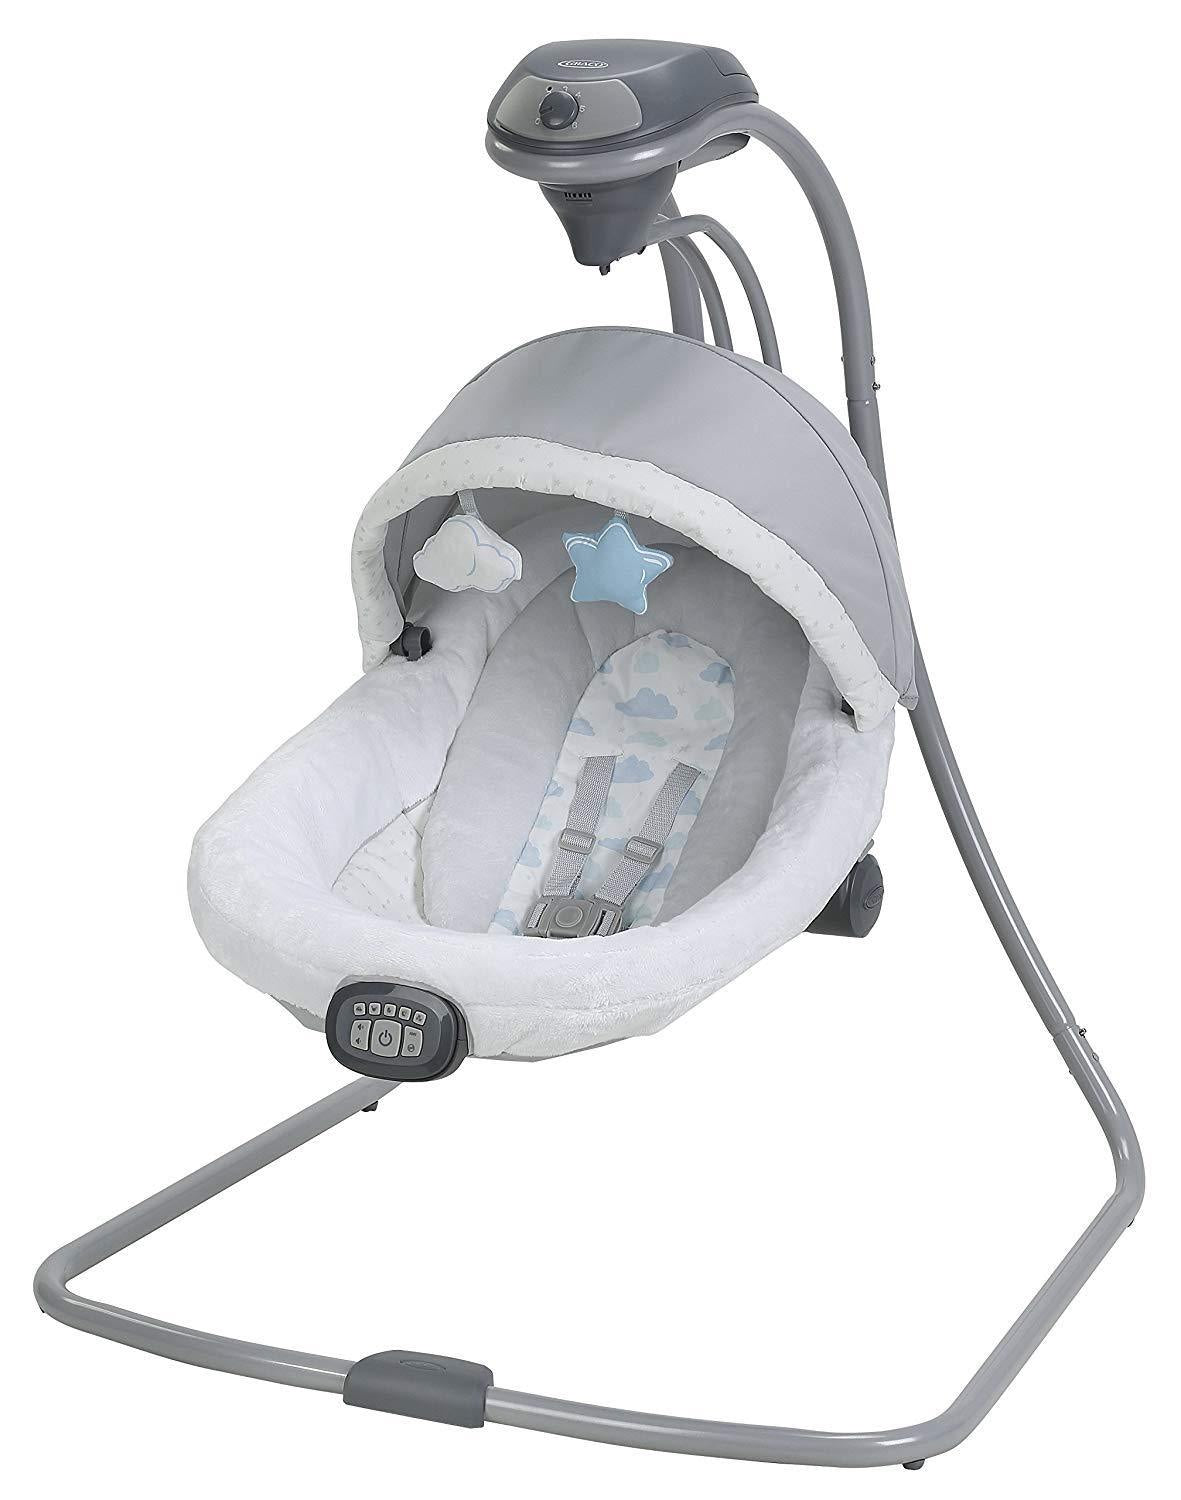 Graco Baby Oasis Swing with Soothe Surround Technology in Azure